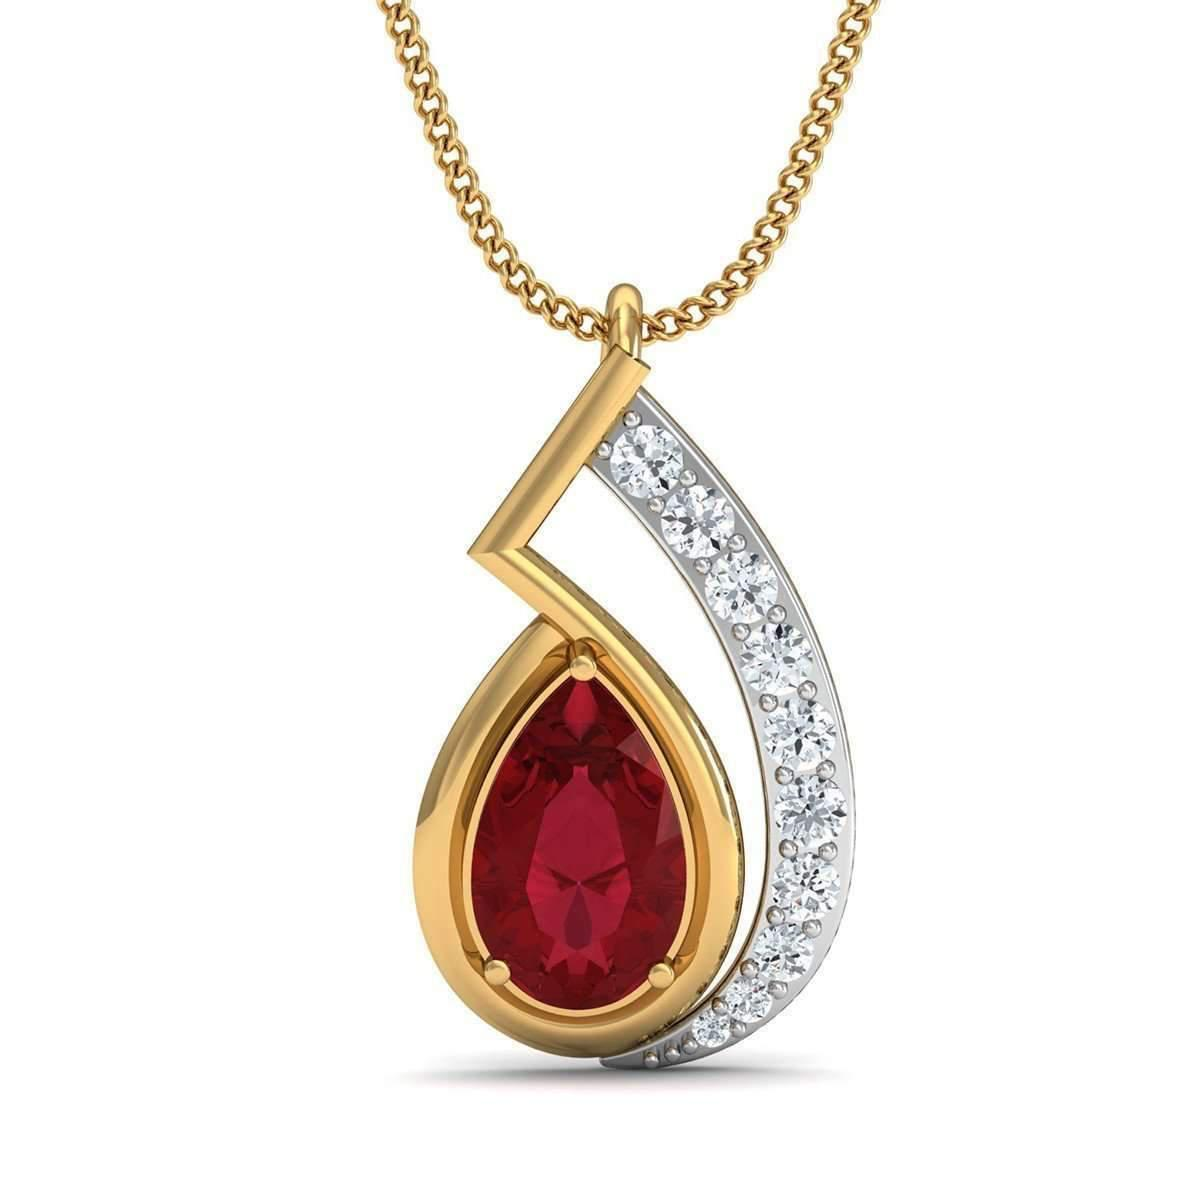 Diamoire Jewels Nature Inspired Prong Set African Ruby and Diamond Pendant in 18kt Yellow Gold MjNxytdd6